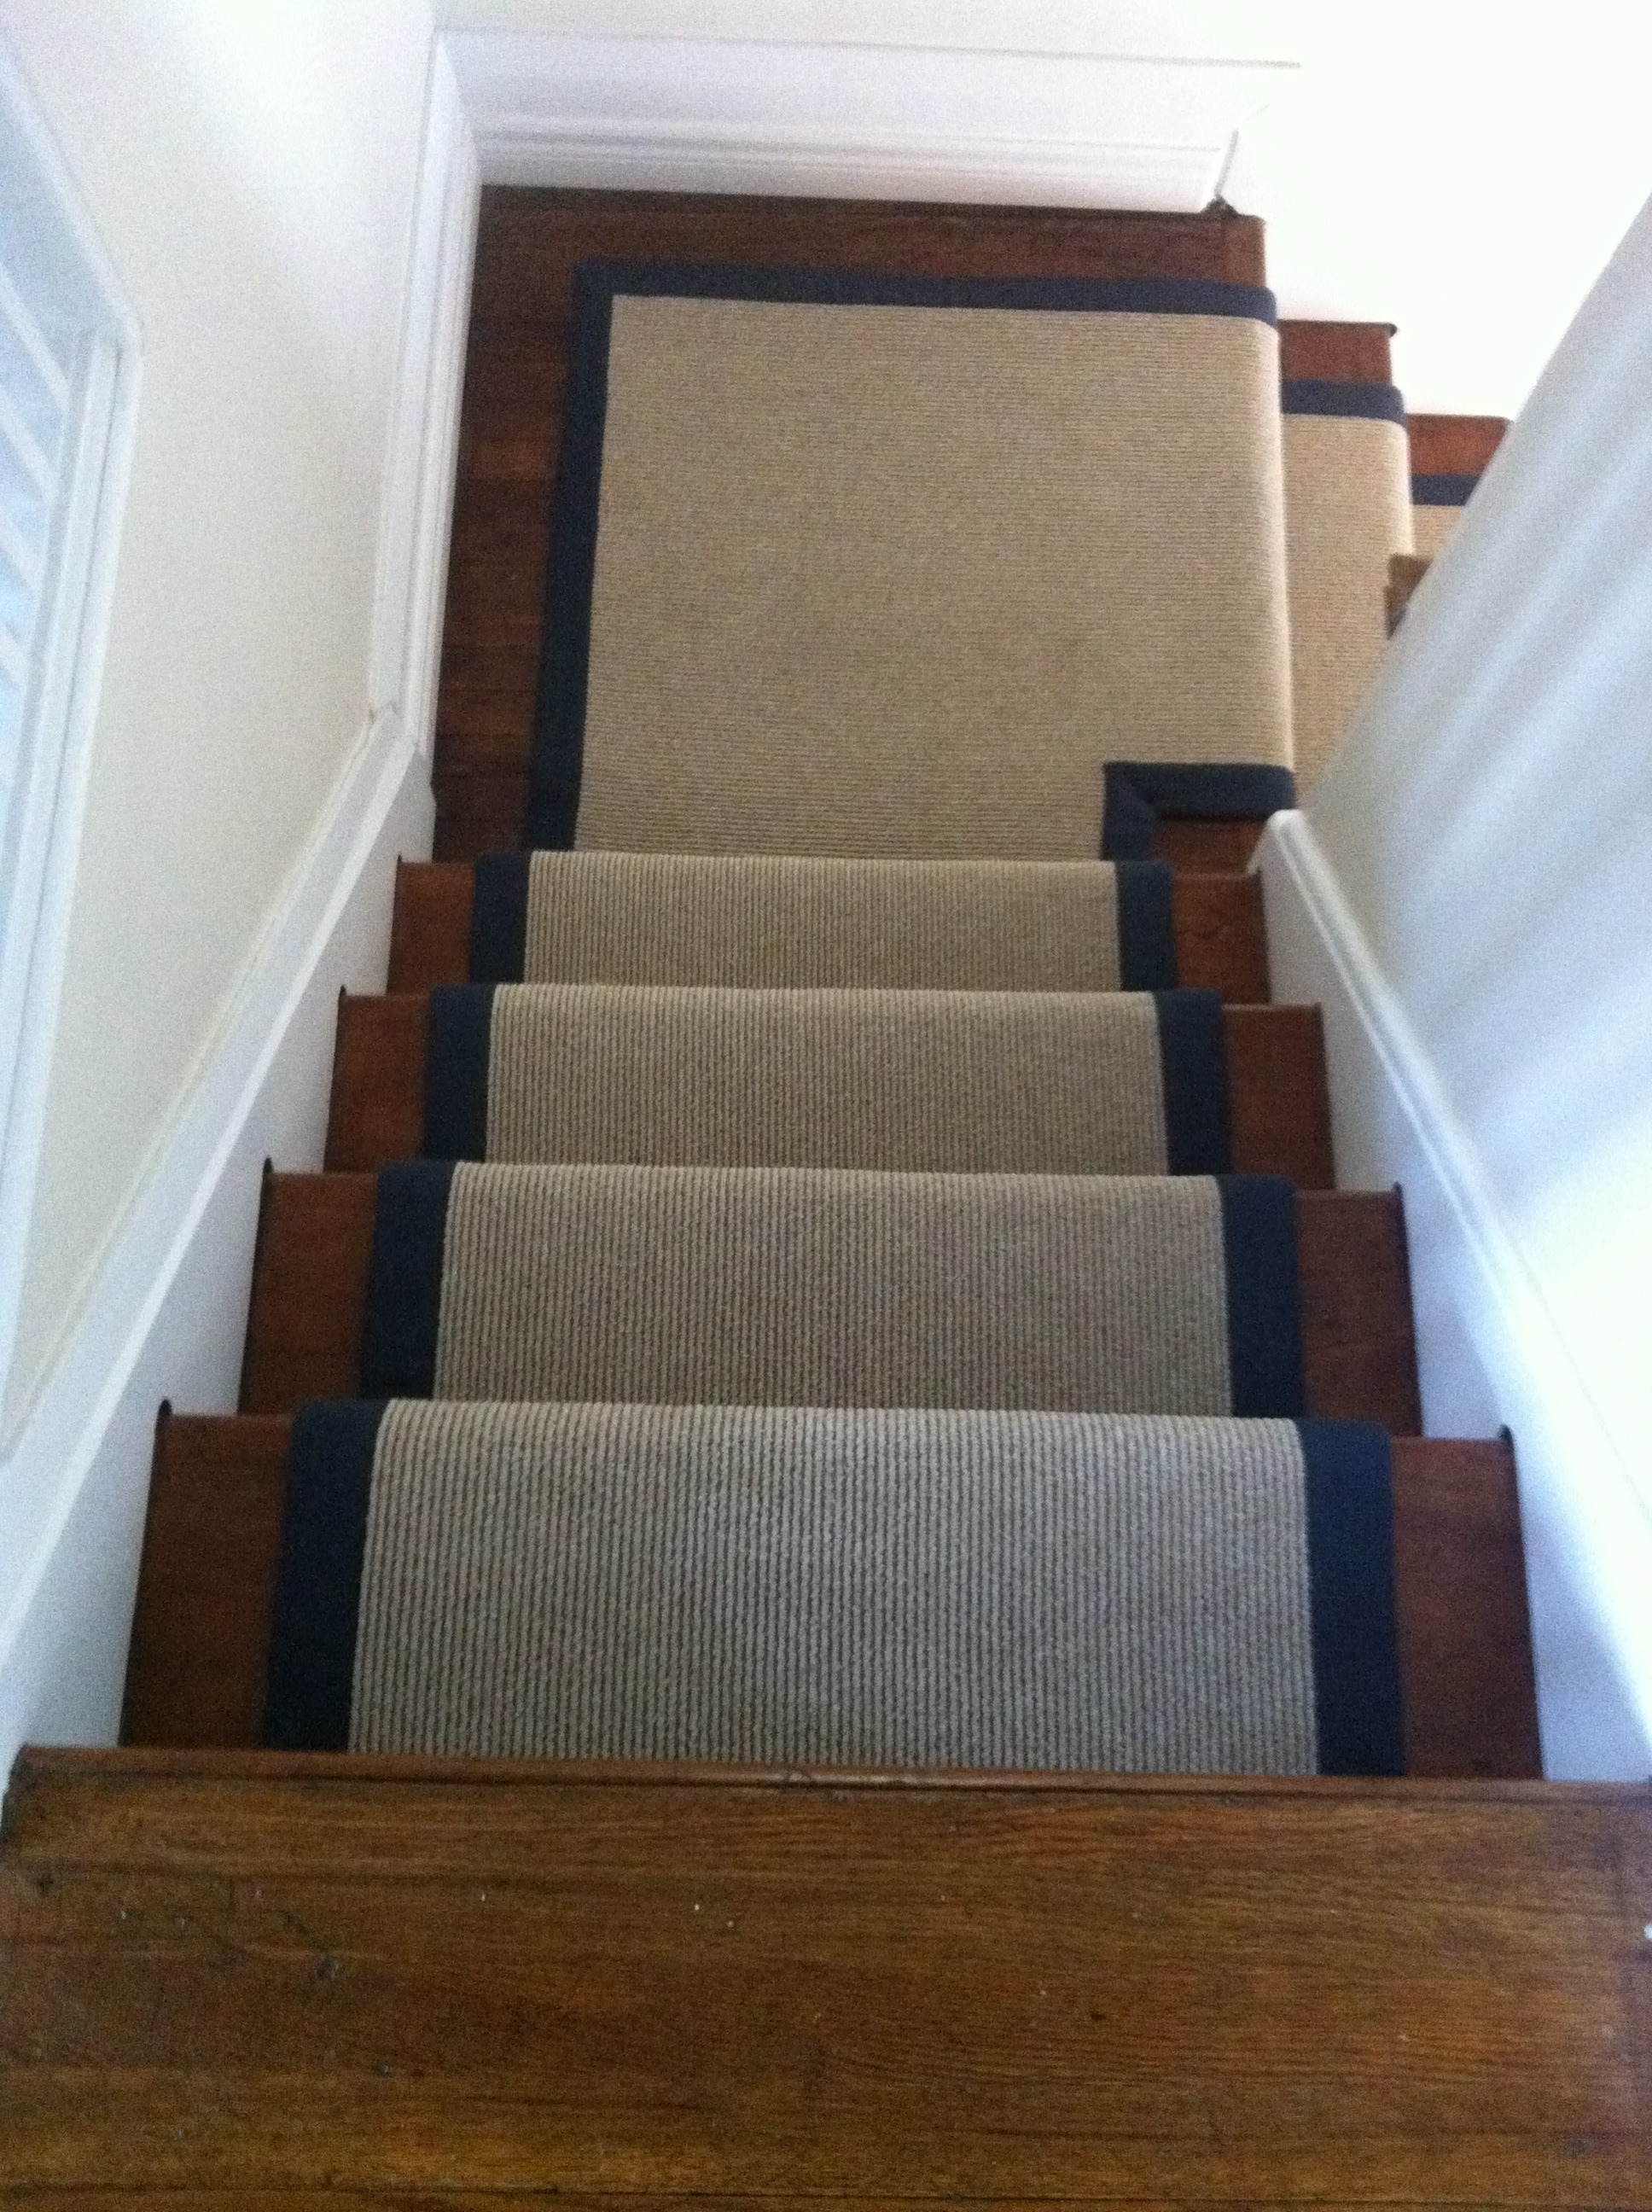 Berber Carpet Stair Runners Toronto Staircase Carpeting Cost   Best Carpet For Stairs And Landing